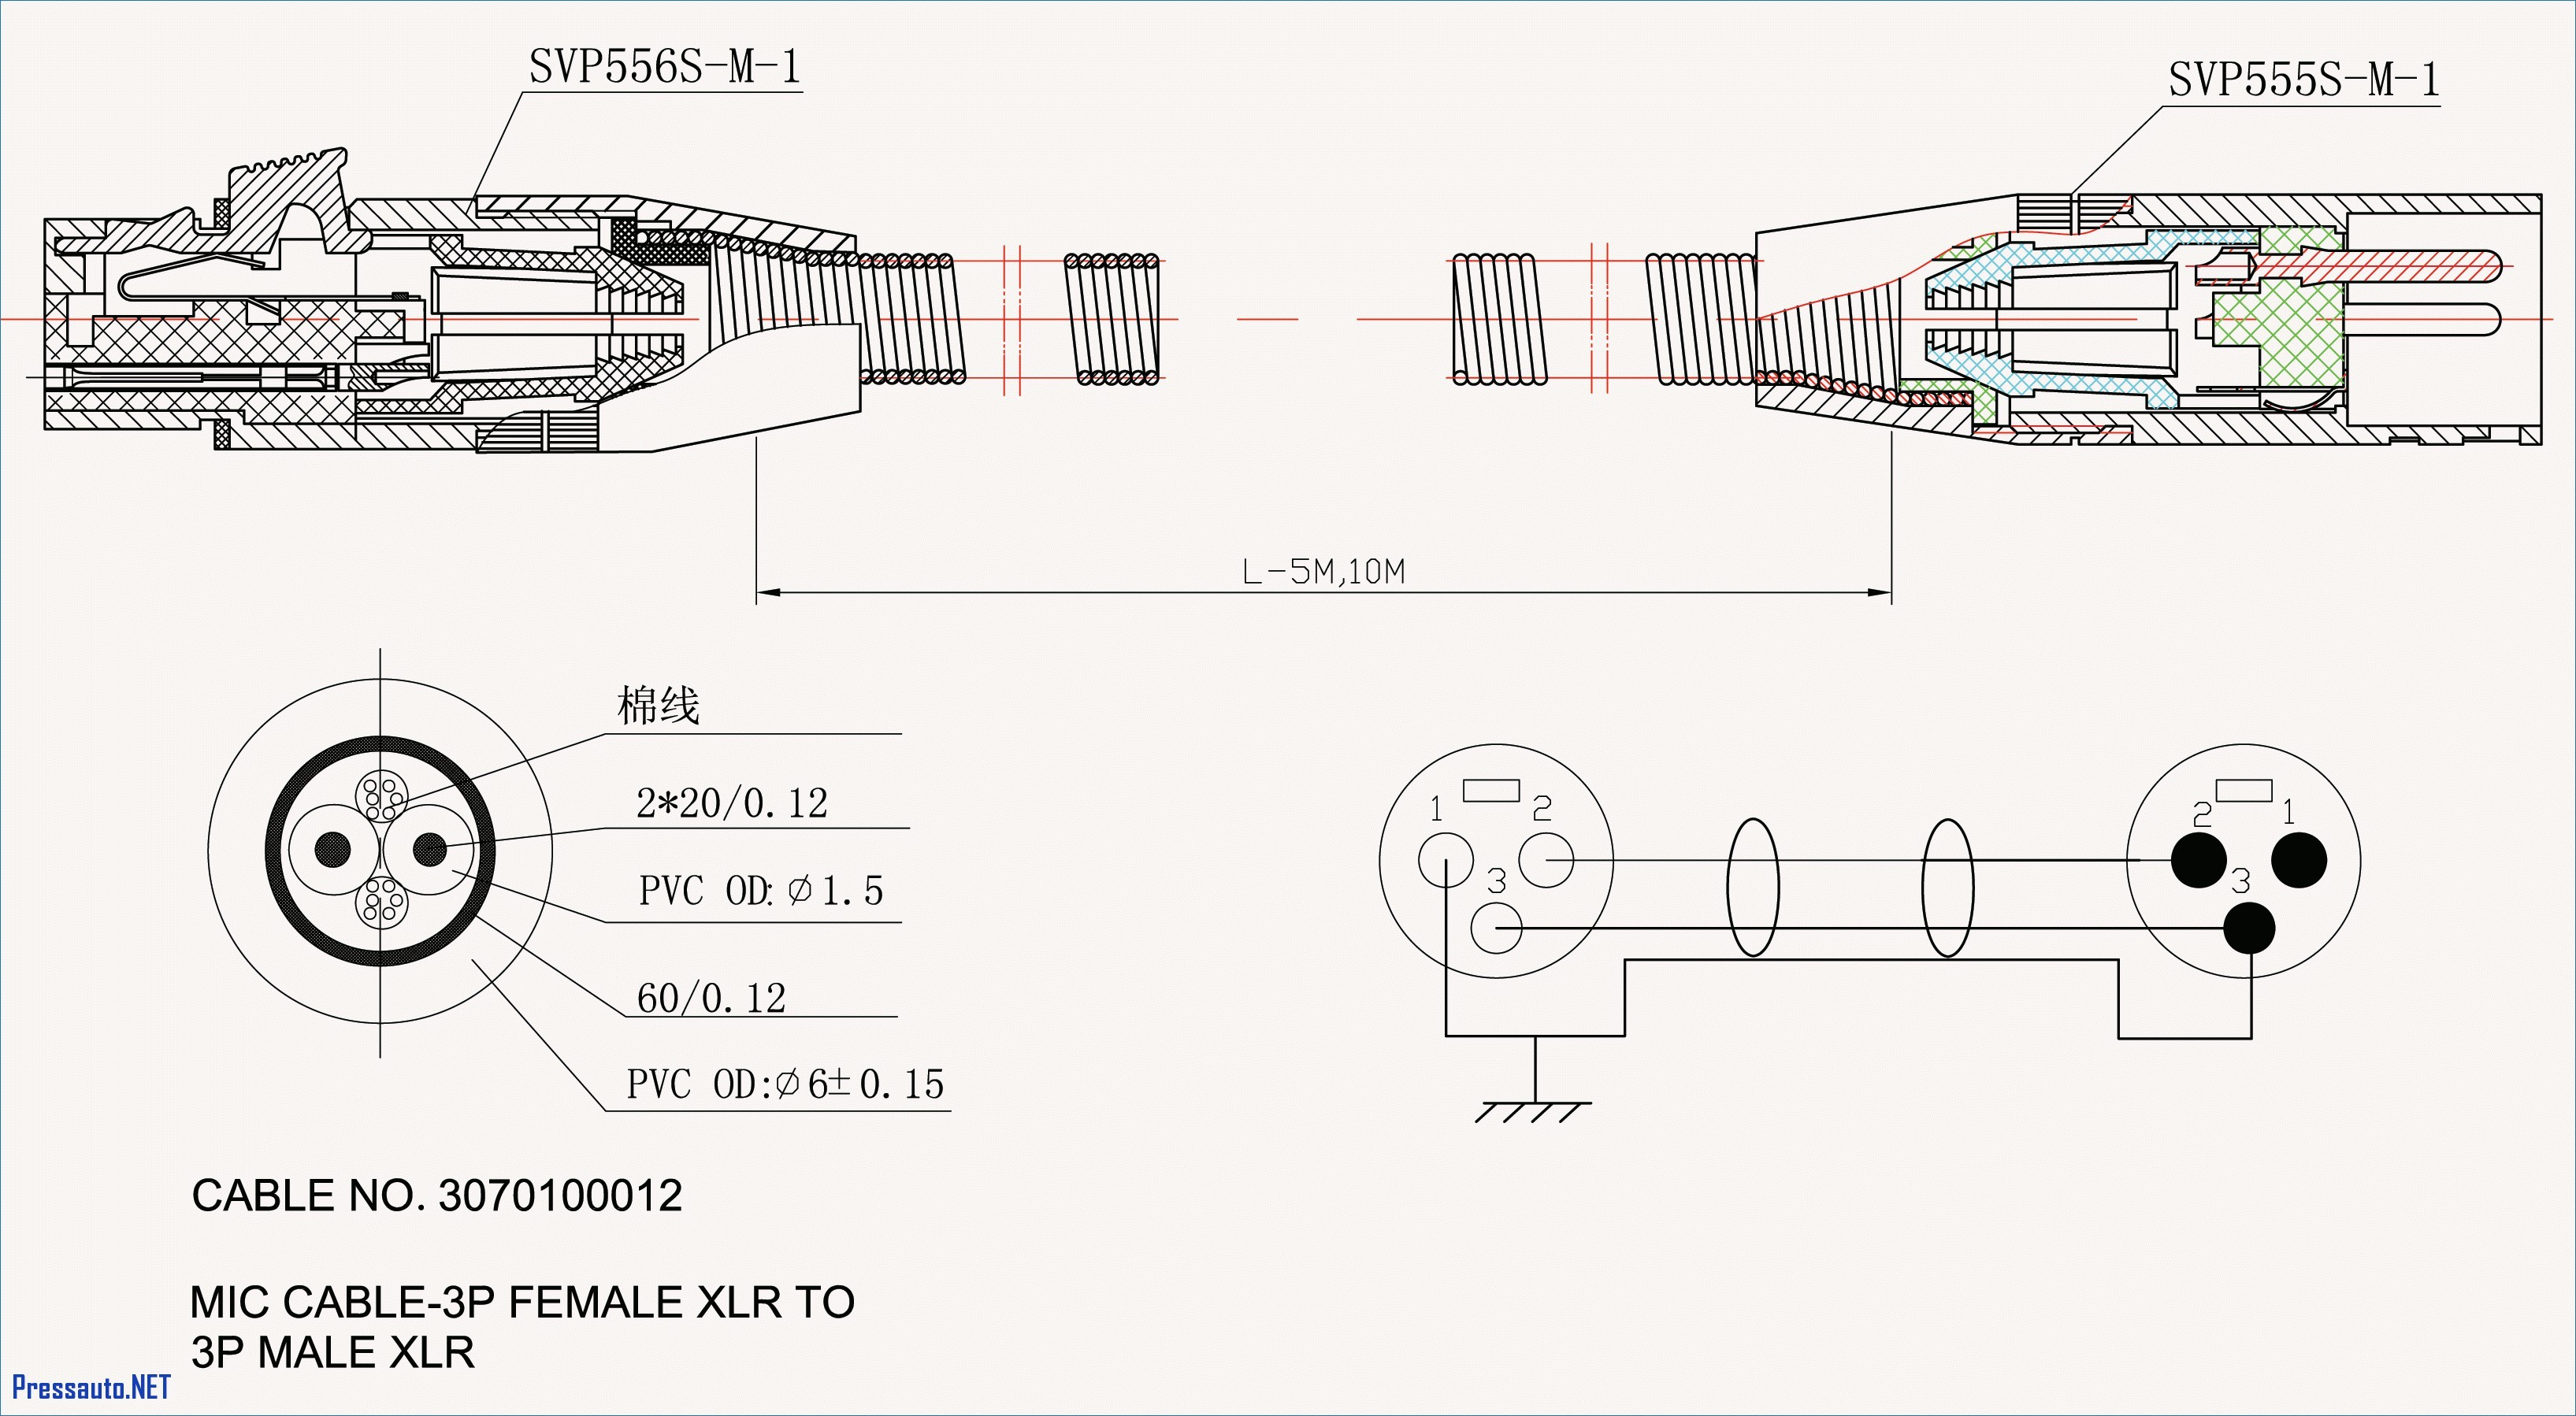 Cat5 Connector Wiring Diagram Wiring Diagram for Cat5 Cable Beautiful 3 Wire Microphone Wiring Of Cat5 Connector Wiring Diagram